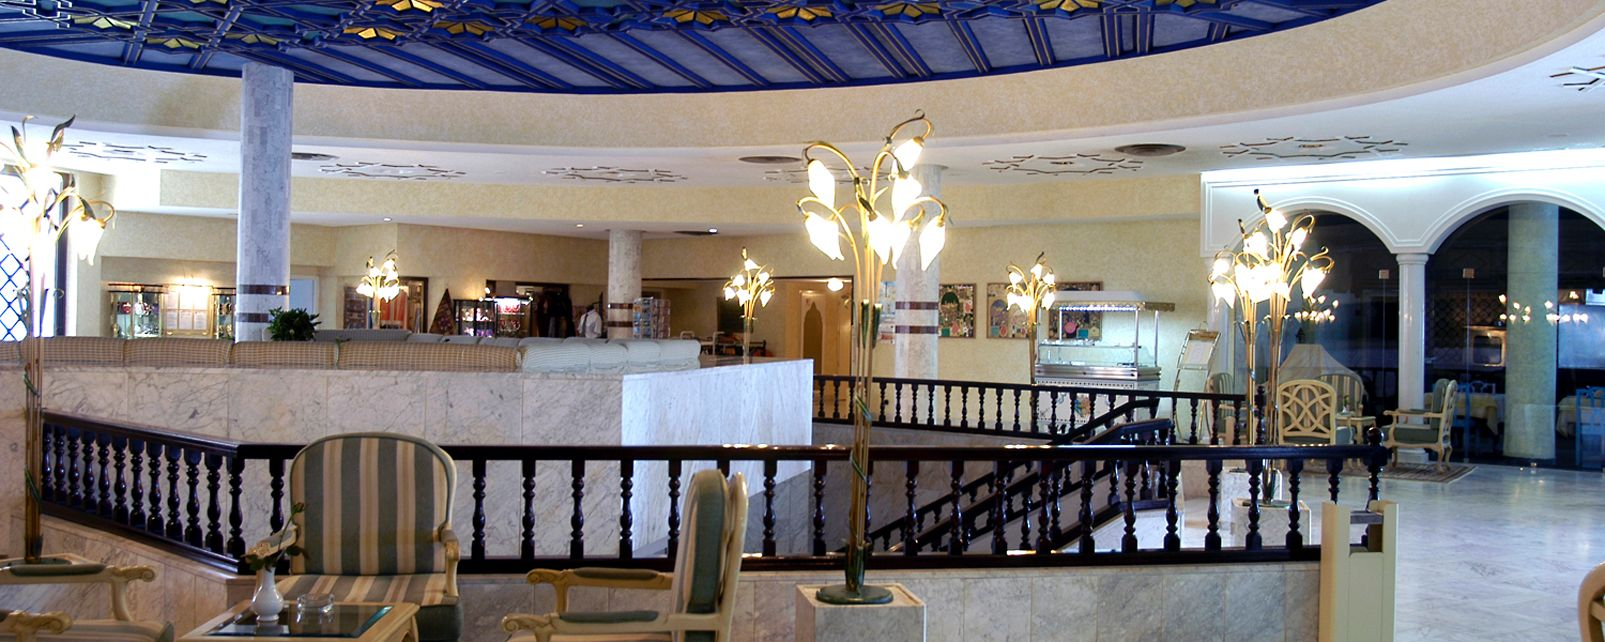 Hotel hasdrubal thalassa spa port el kantaoui in - Hasdrubal port el kantaoui ...